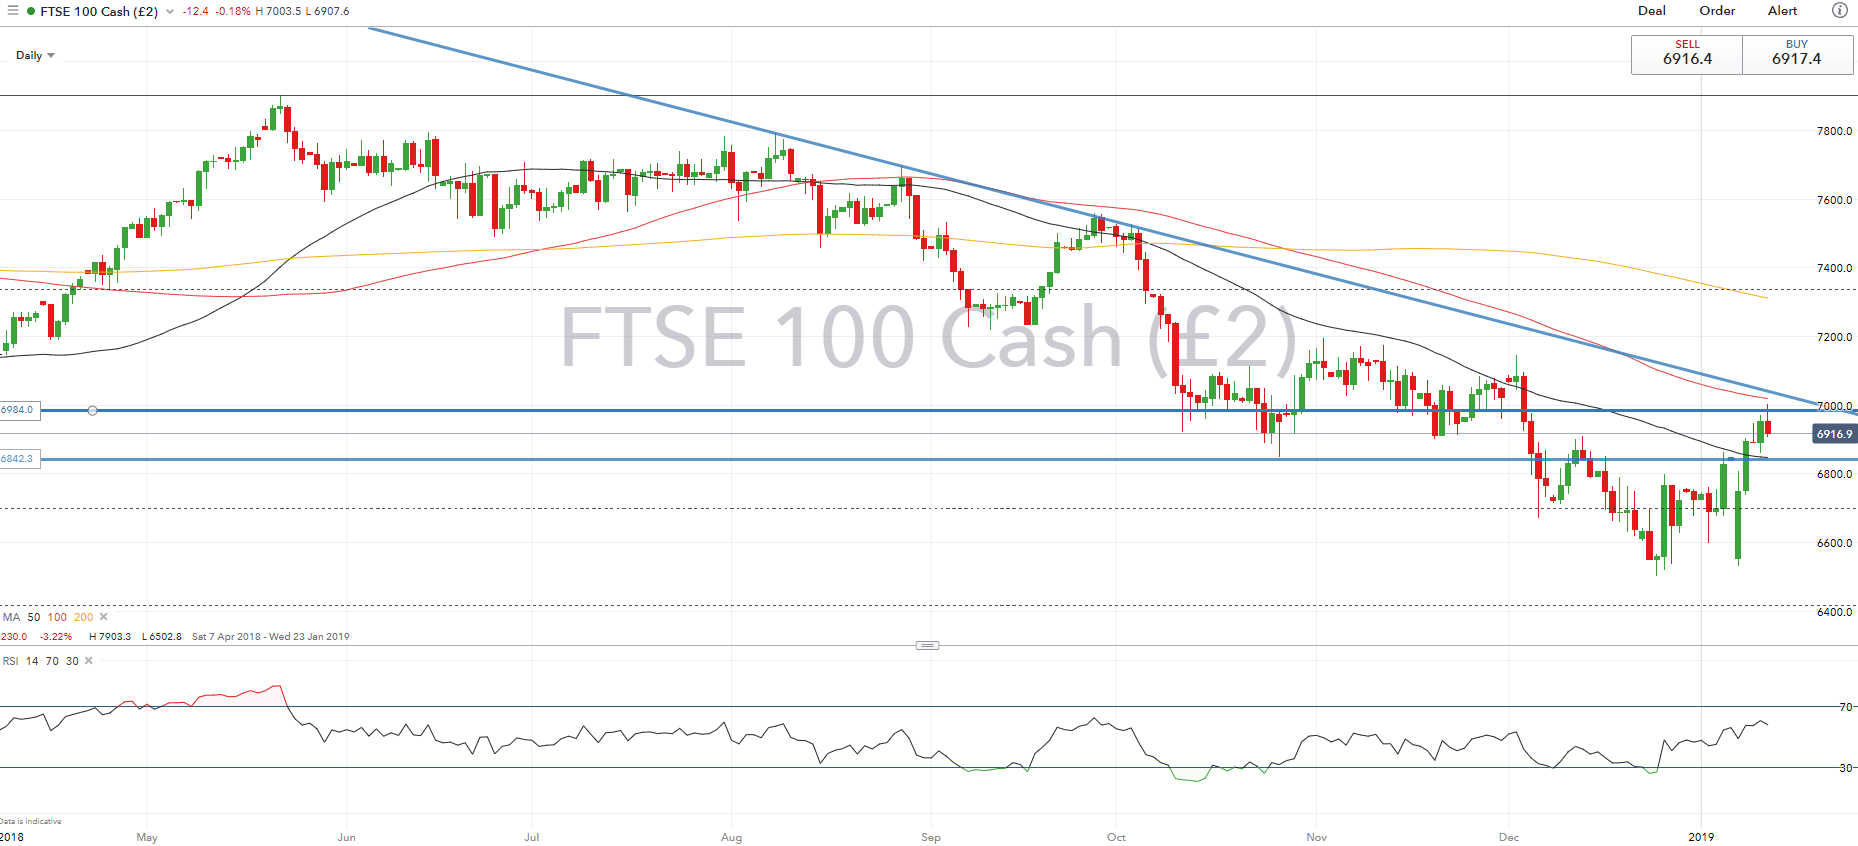 FTSE 100 Looks to Crucial Brexit Vote, S&P 500 Backs Off Resistance